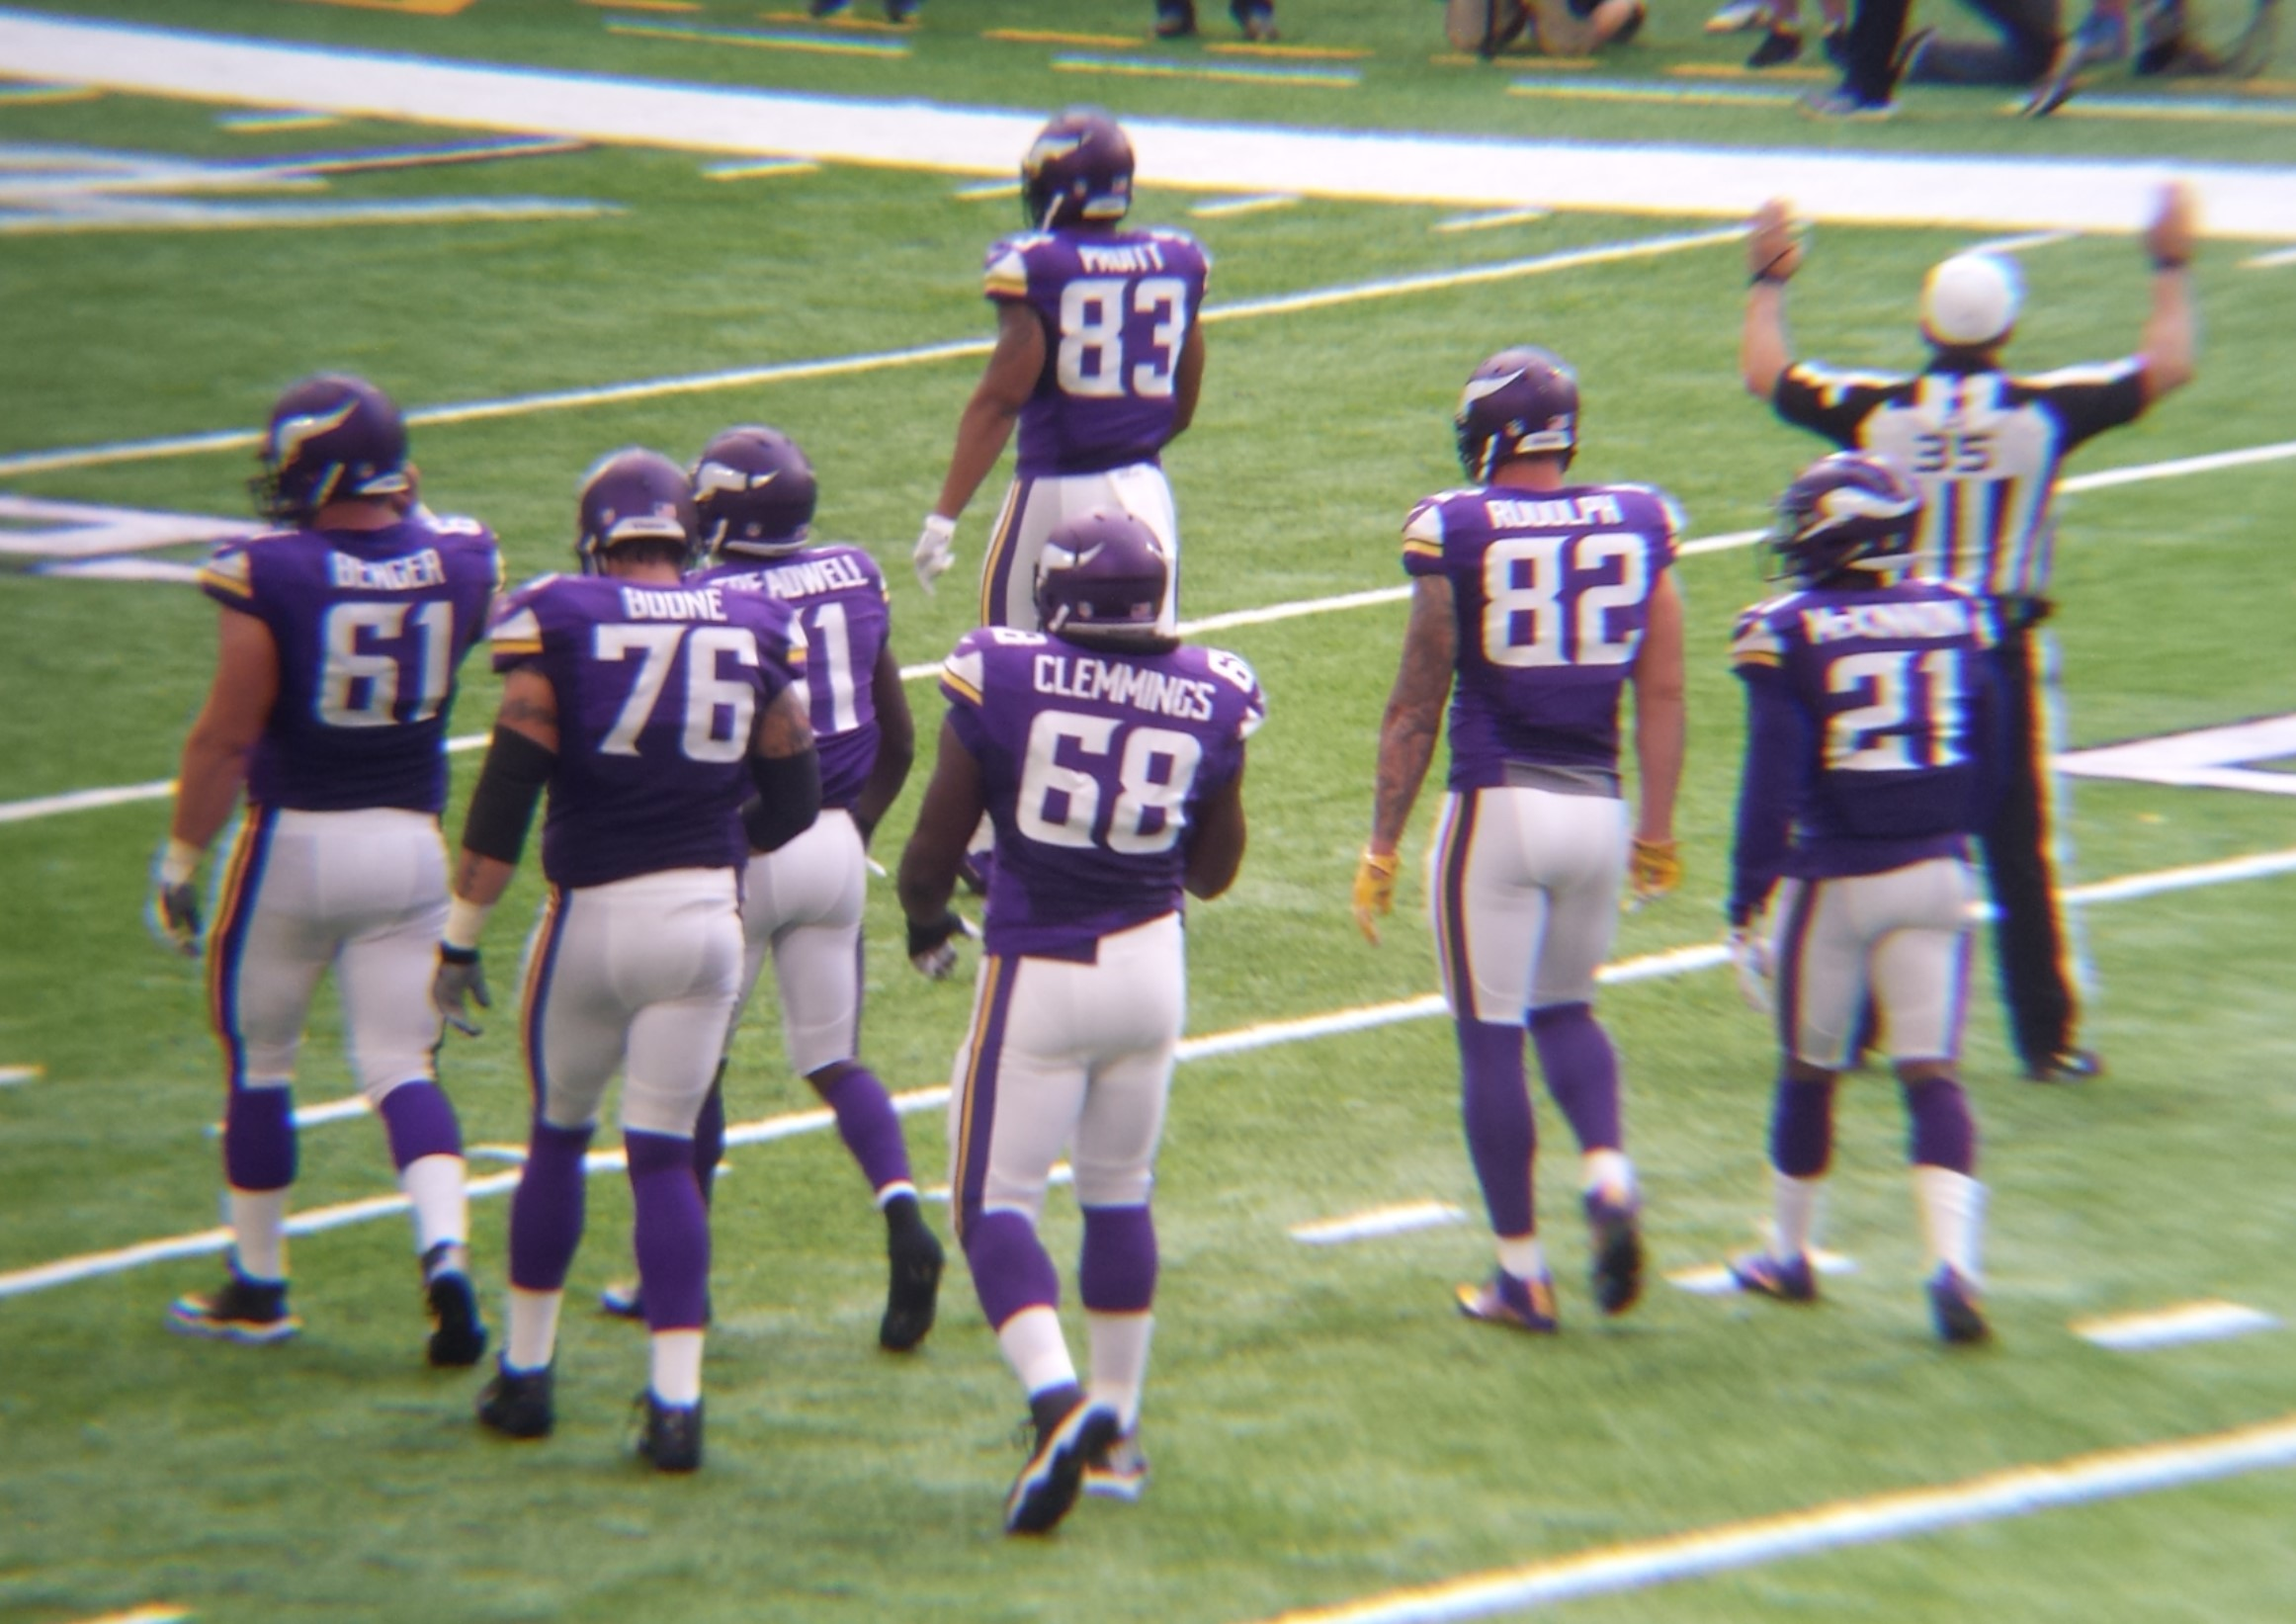 Minnesota Vikings U.S. Bank Stadium First Game - After the Play